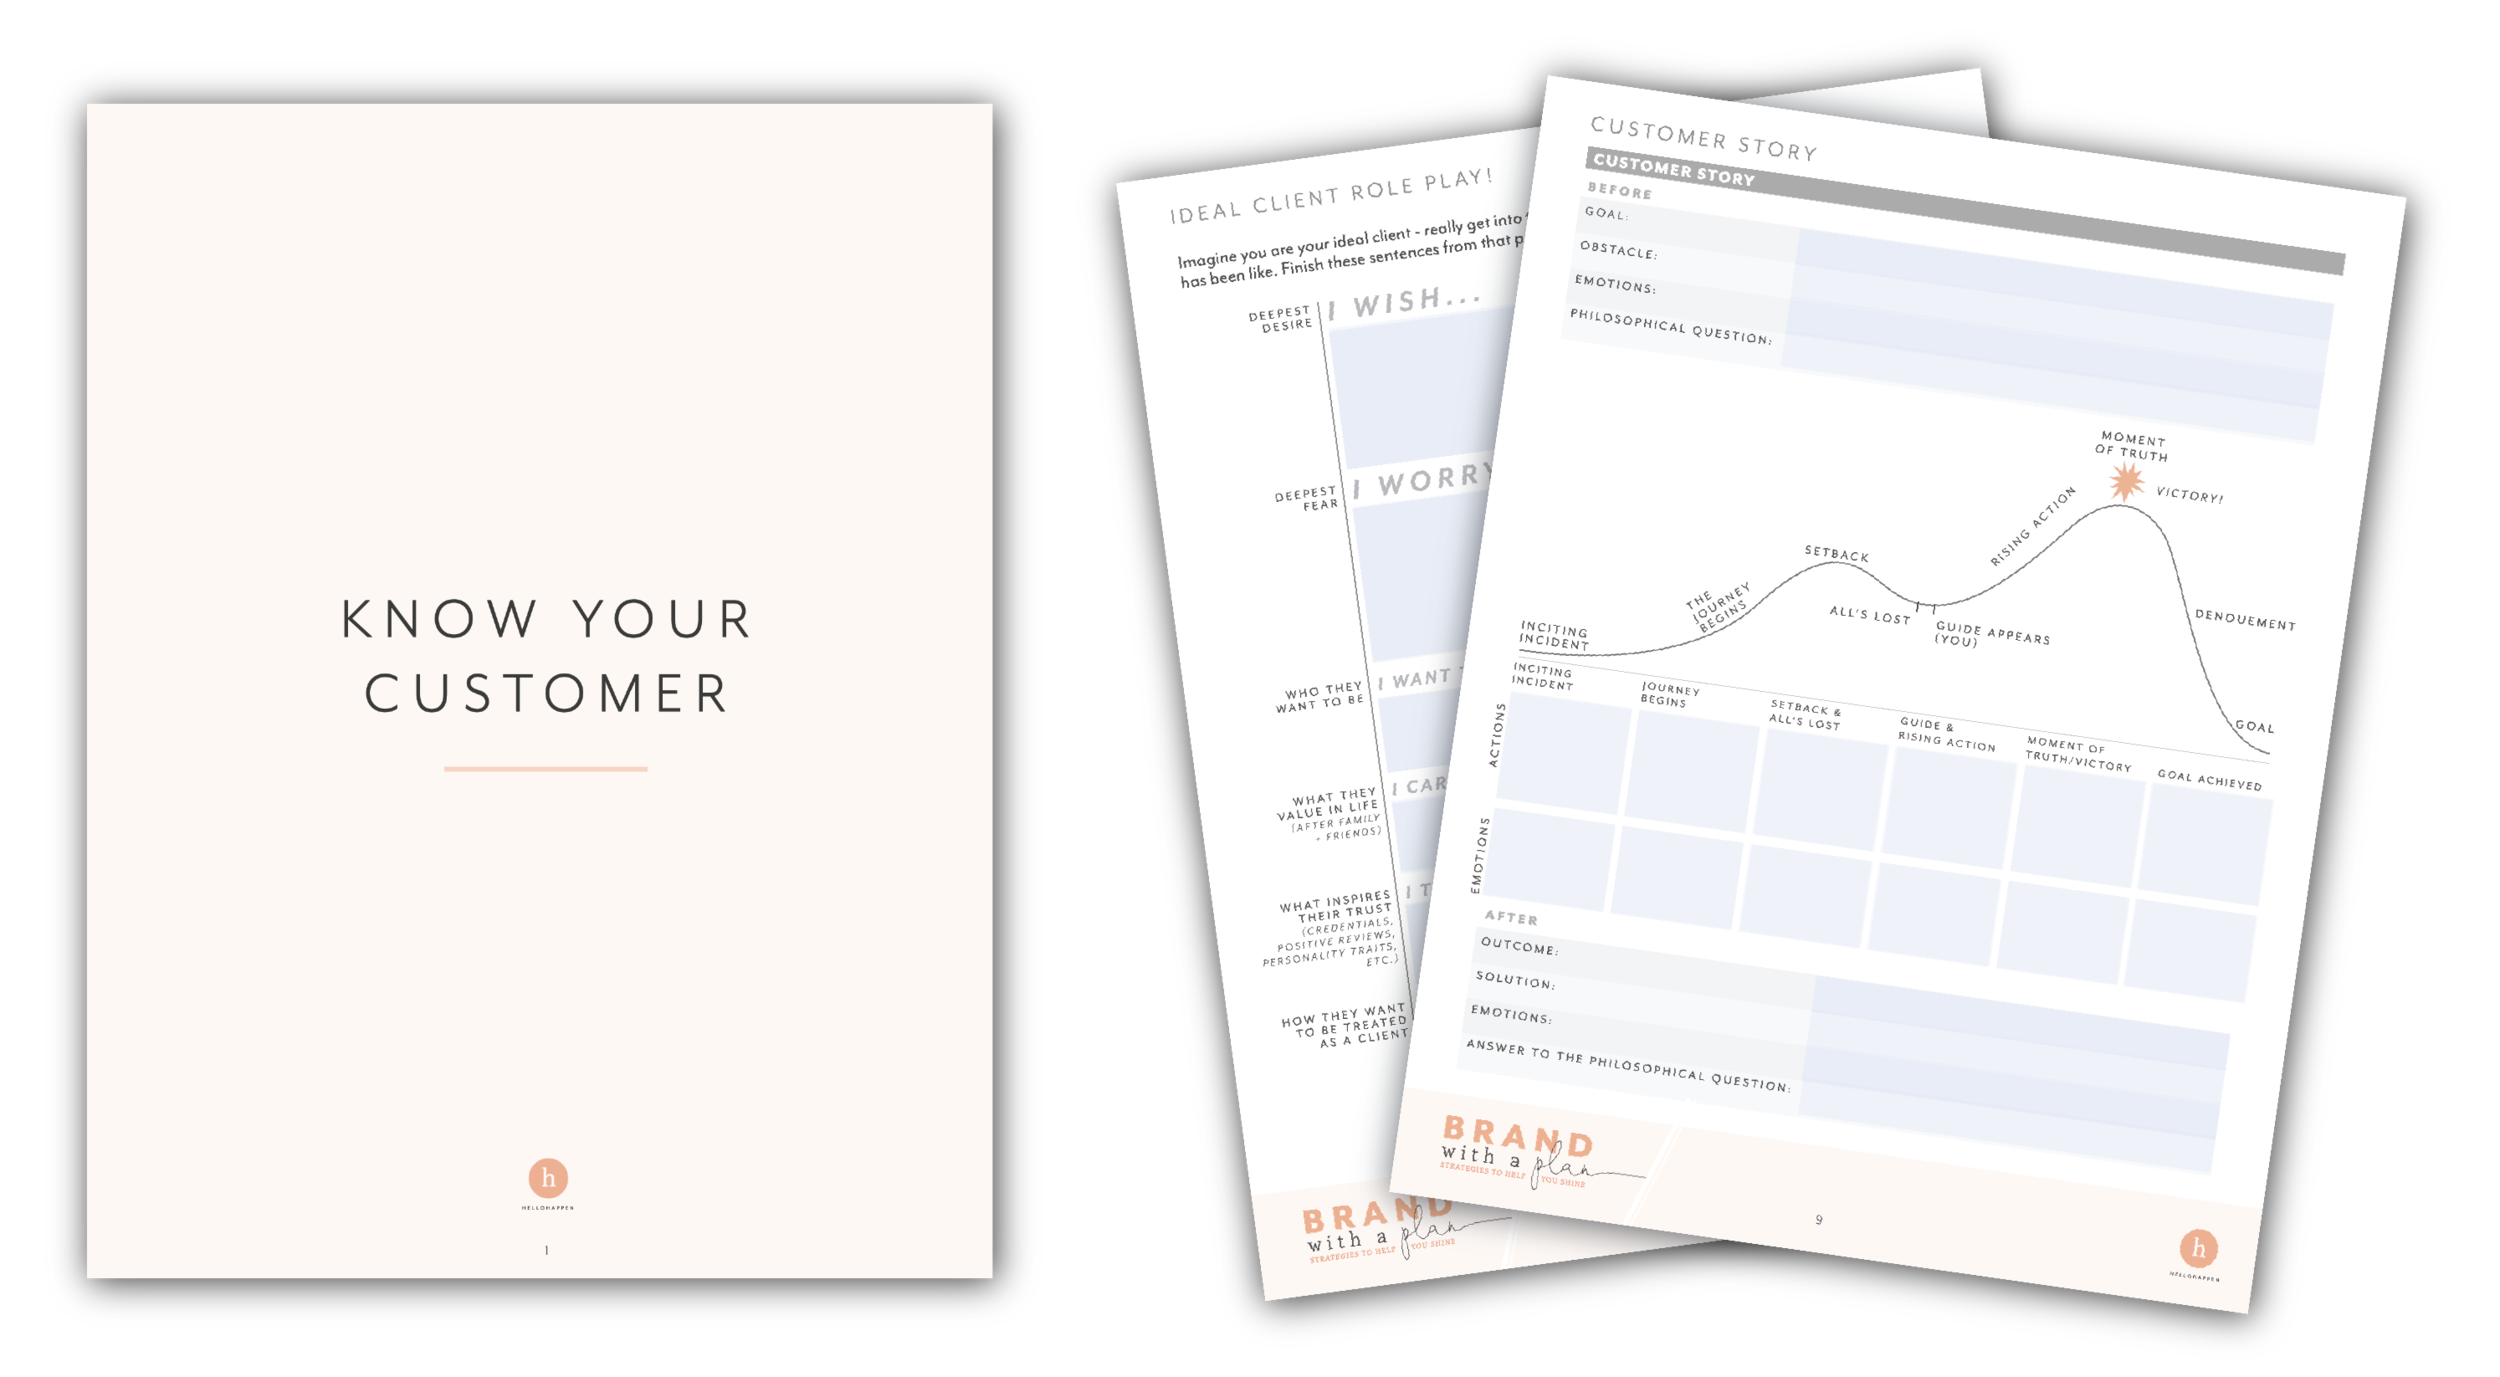 Customer_Workbook